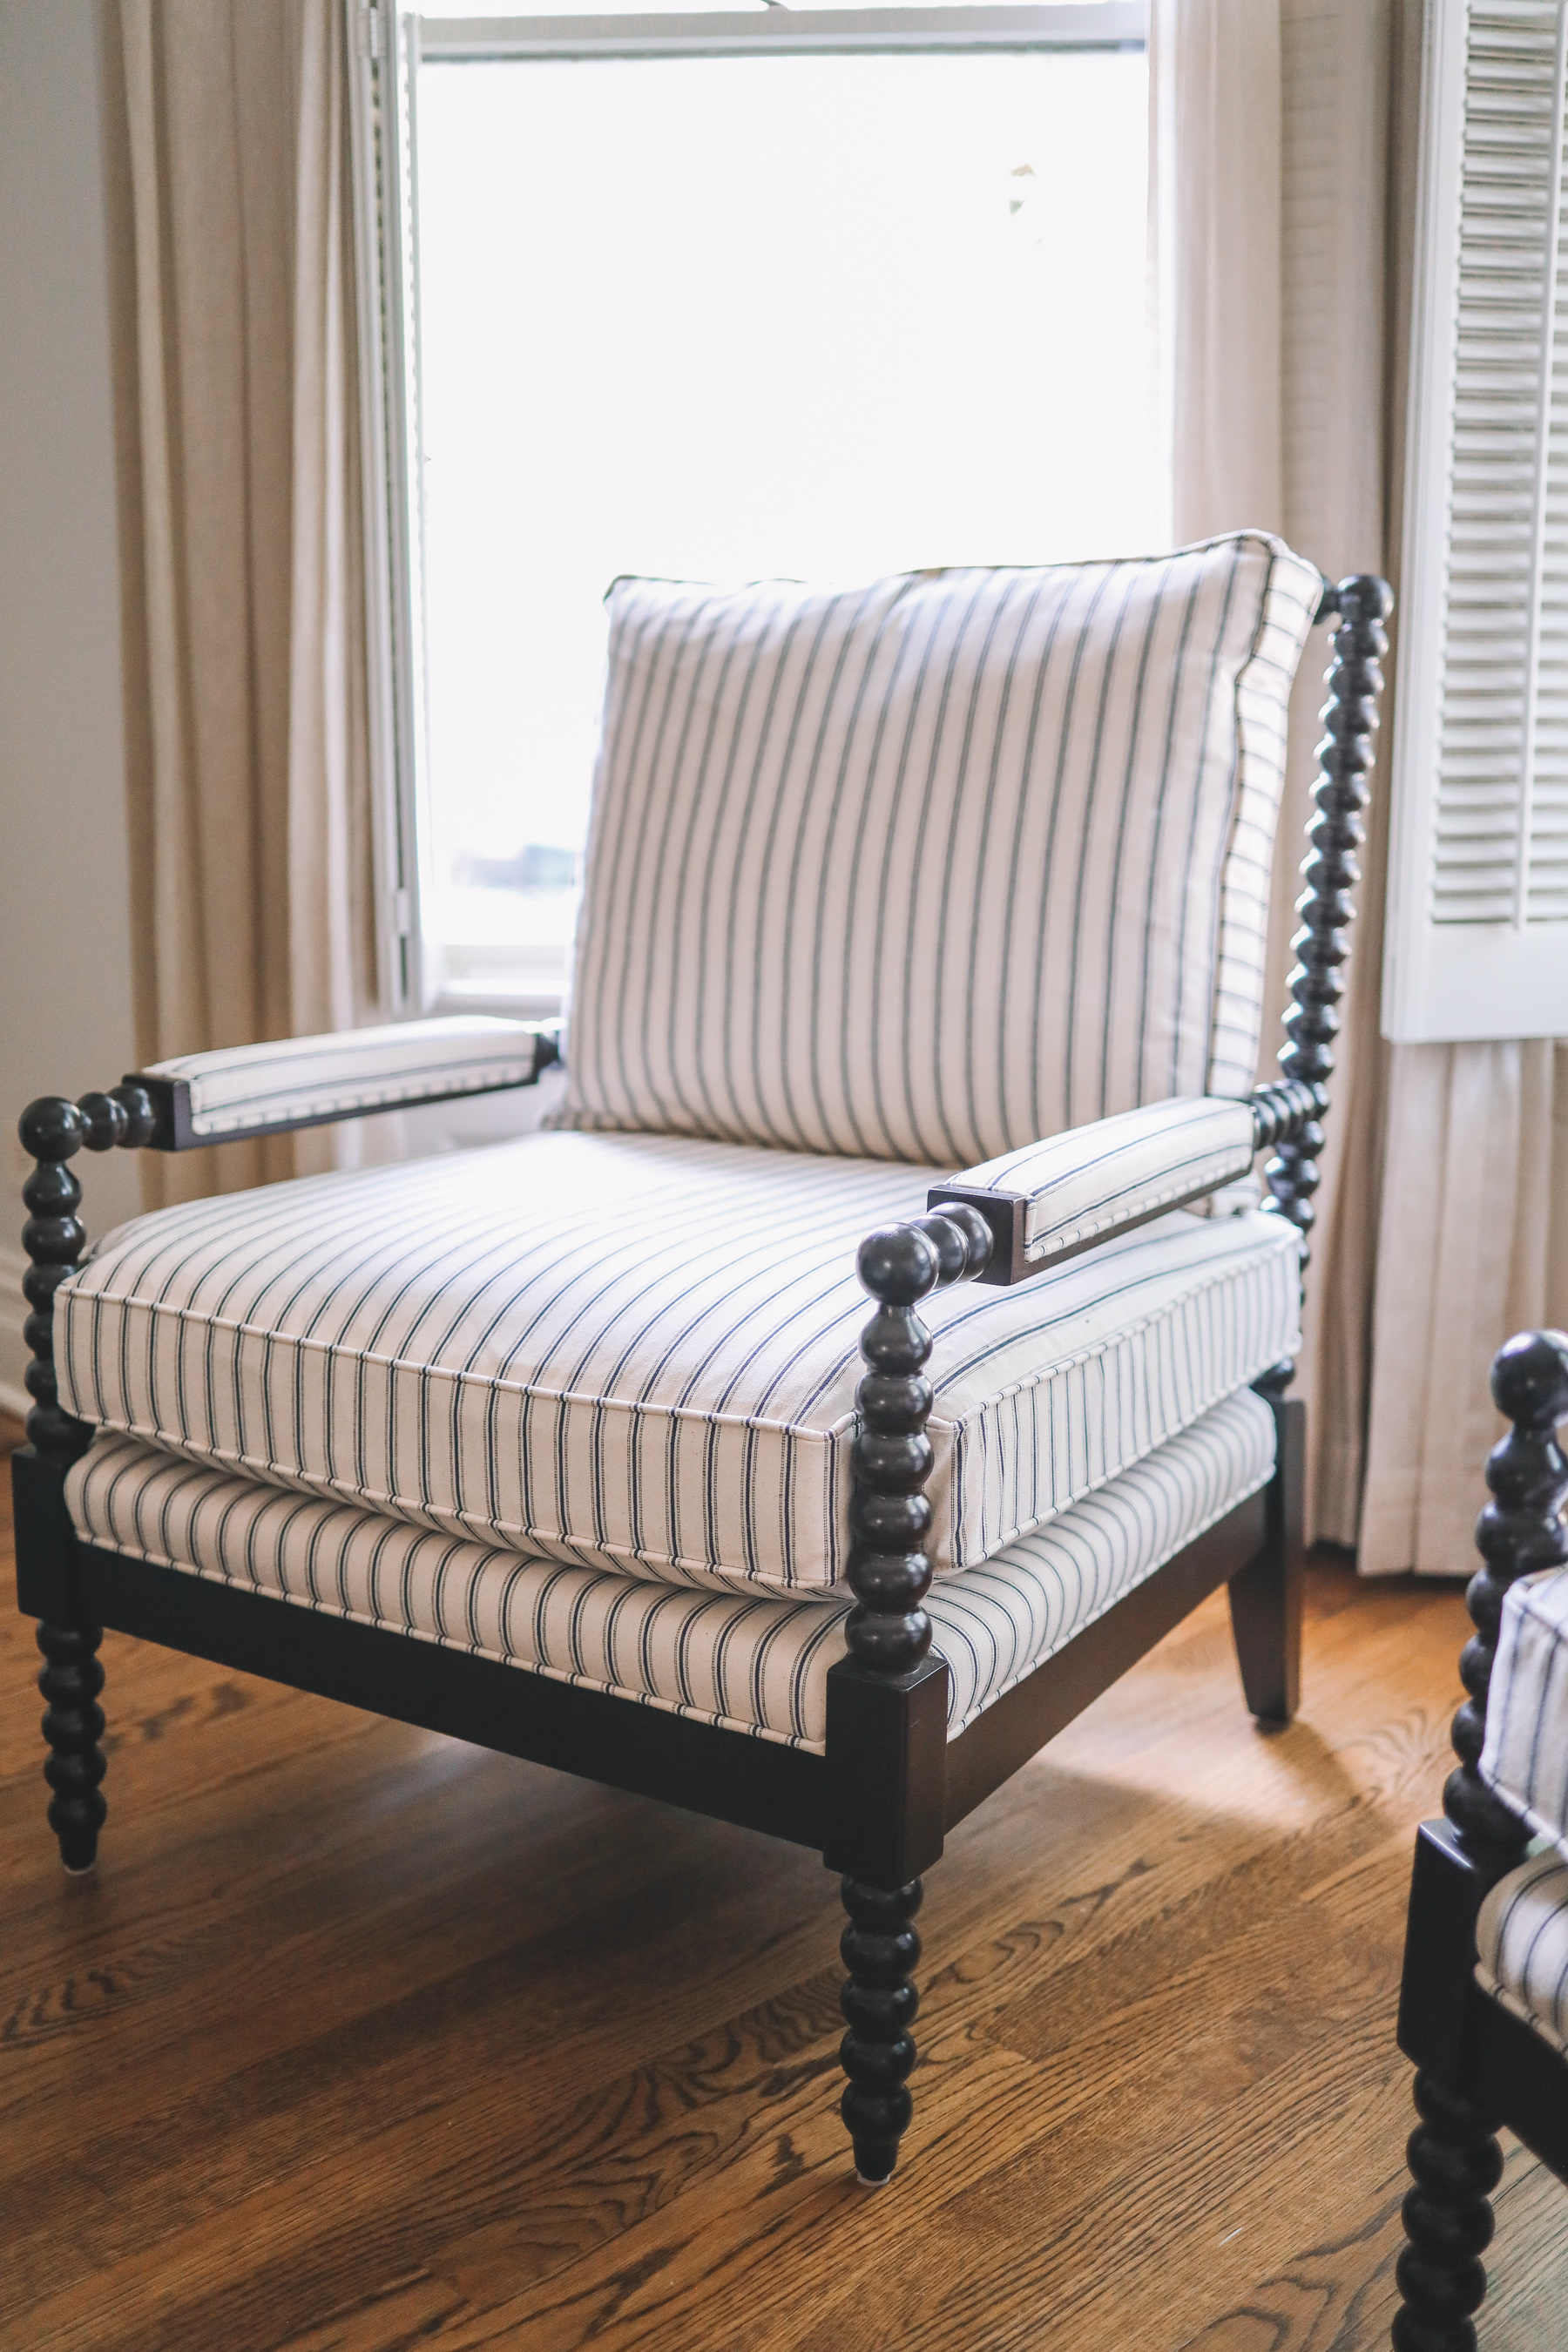 Ballard Designs Shiloh Spool Chair Review of this striped chair